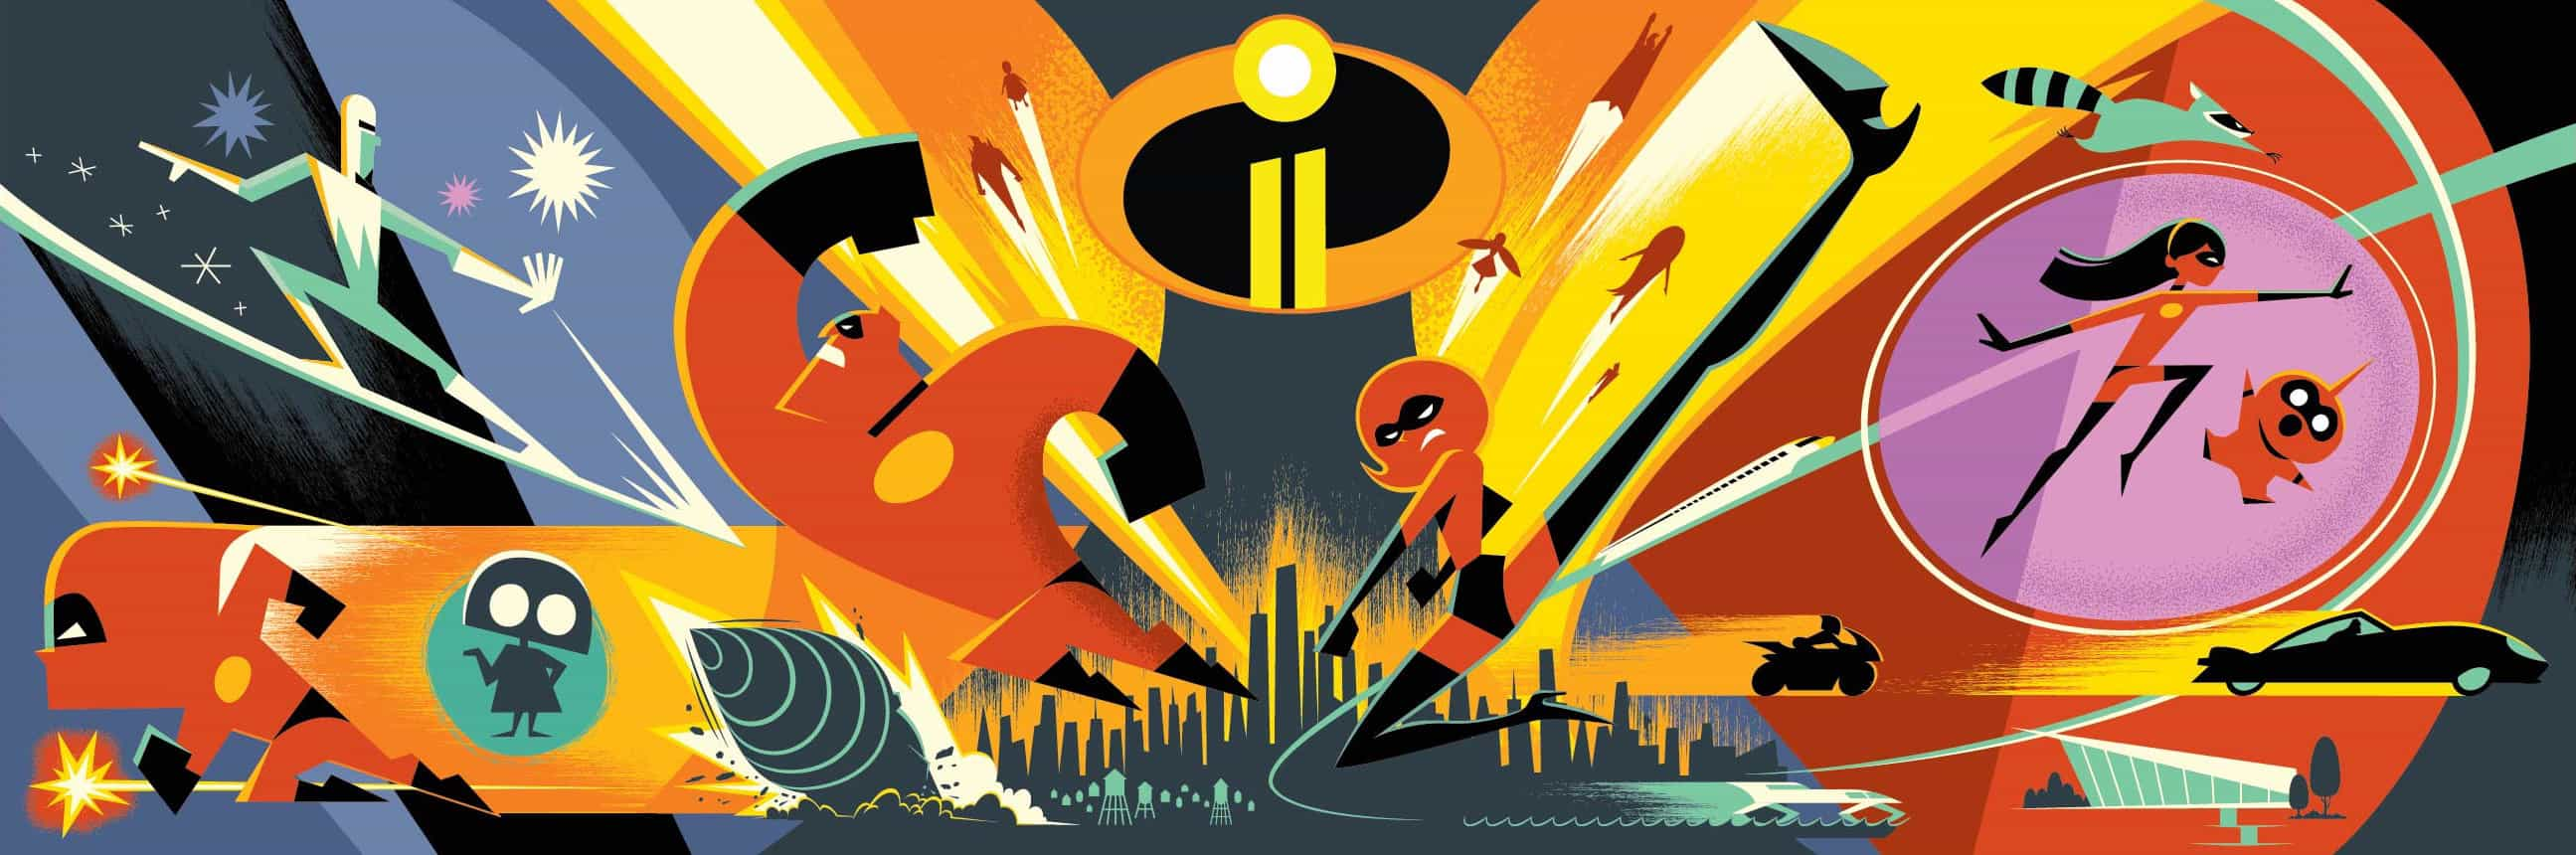 """THAT'S INCREDIBLE -- In """"Incredibles 2,"""" Helen is in the spotlight, while Bob is at home with Violet, Dash and baby Jack-Jack, whose superpowers are still under wraps. When a new villain hatches a brilliant and dangerous plot, the family and Frozone team up to do what they do best. Featuring the voices of Holly Hunter, Craig T. Nelson, Sarah Vowell, Huck Milner and Samuel L. Jackson, Disney•Pixar's """"Incredibles 2"""" opens in theaters on June 15, 2018.  (Concept Art) © 2017 Disney•Pixar. All Rights Reserved."""